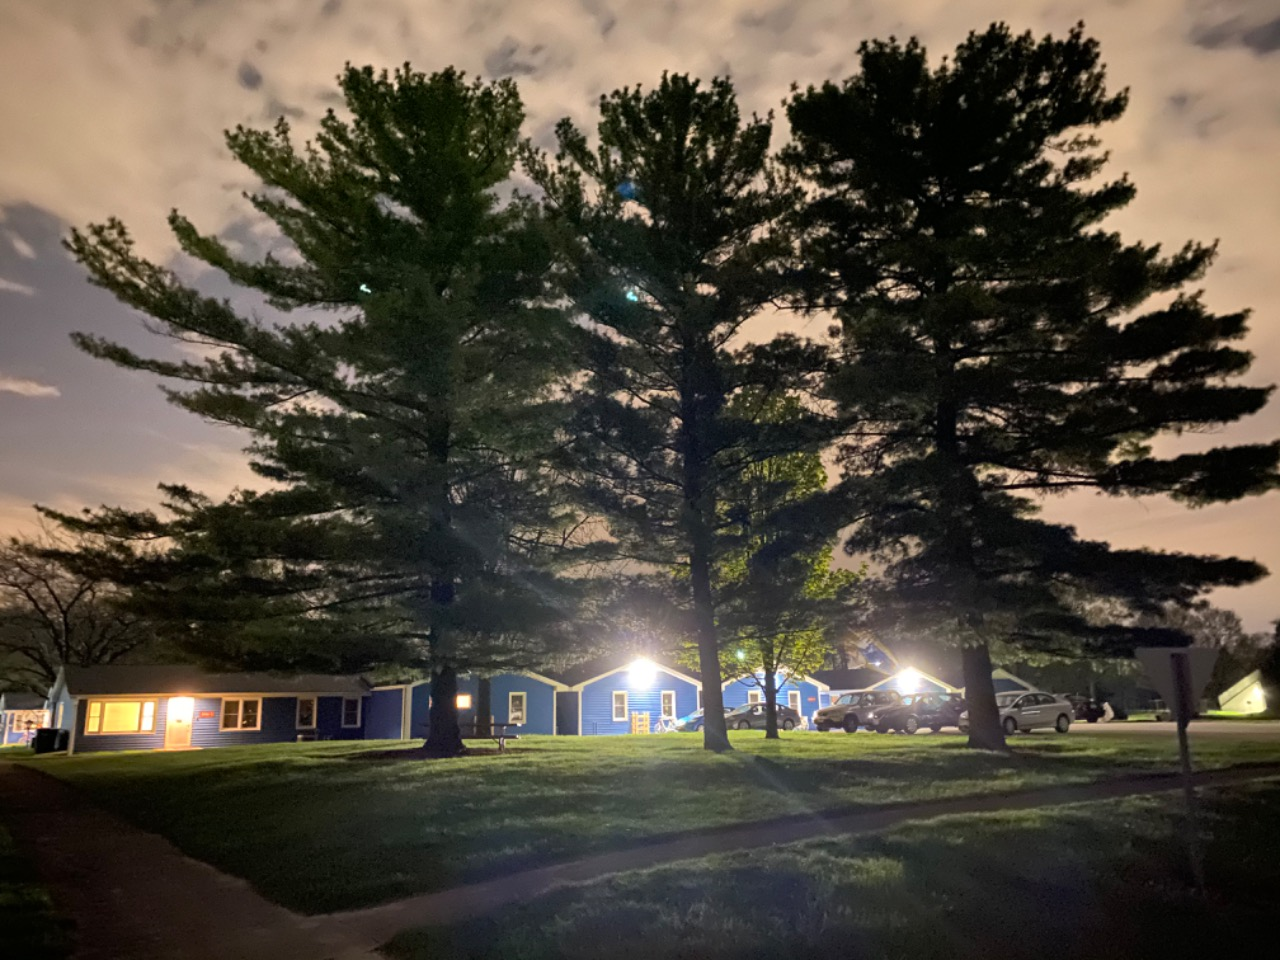 Twinkling lights come from Dorm 5 in the Village at night. landscape, building, plant, tree, night, cloud, night Photo: Zubair Ahmad Dar